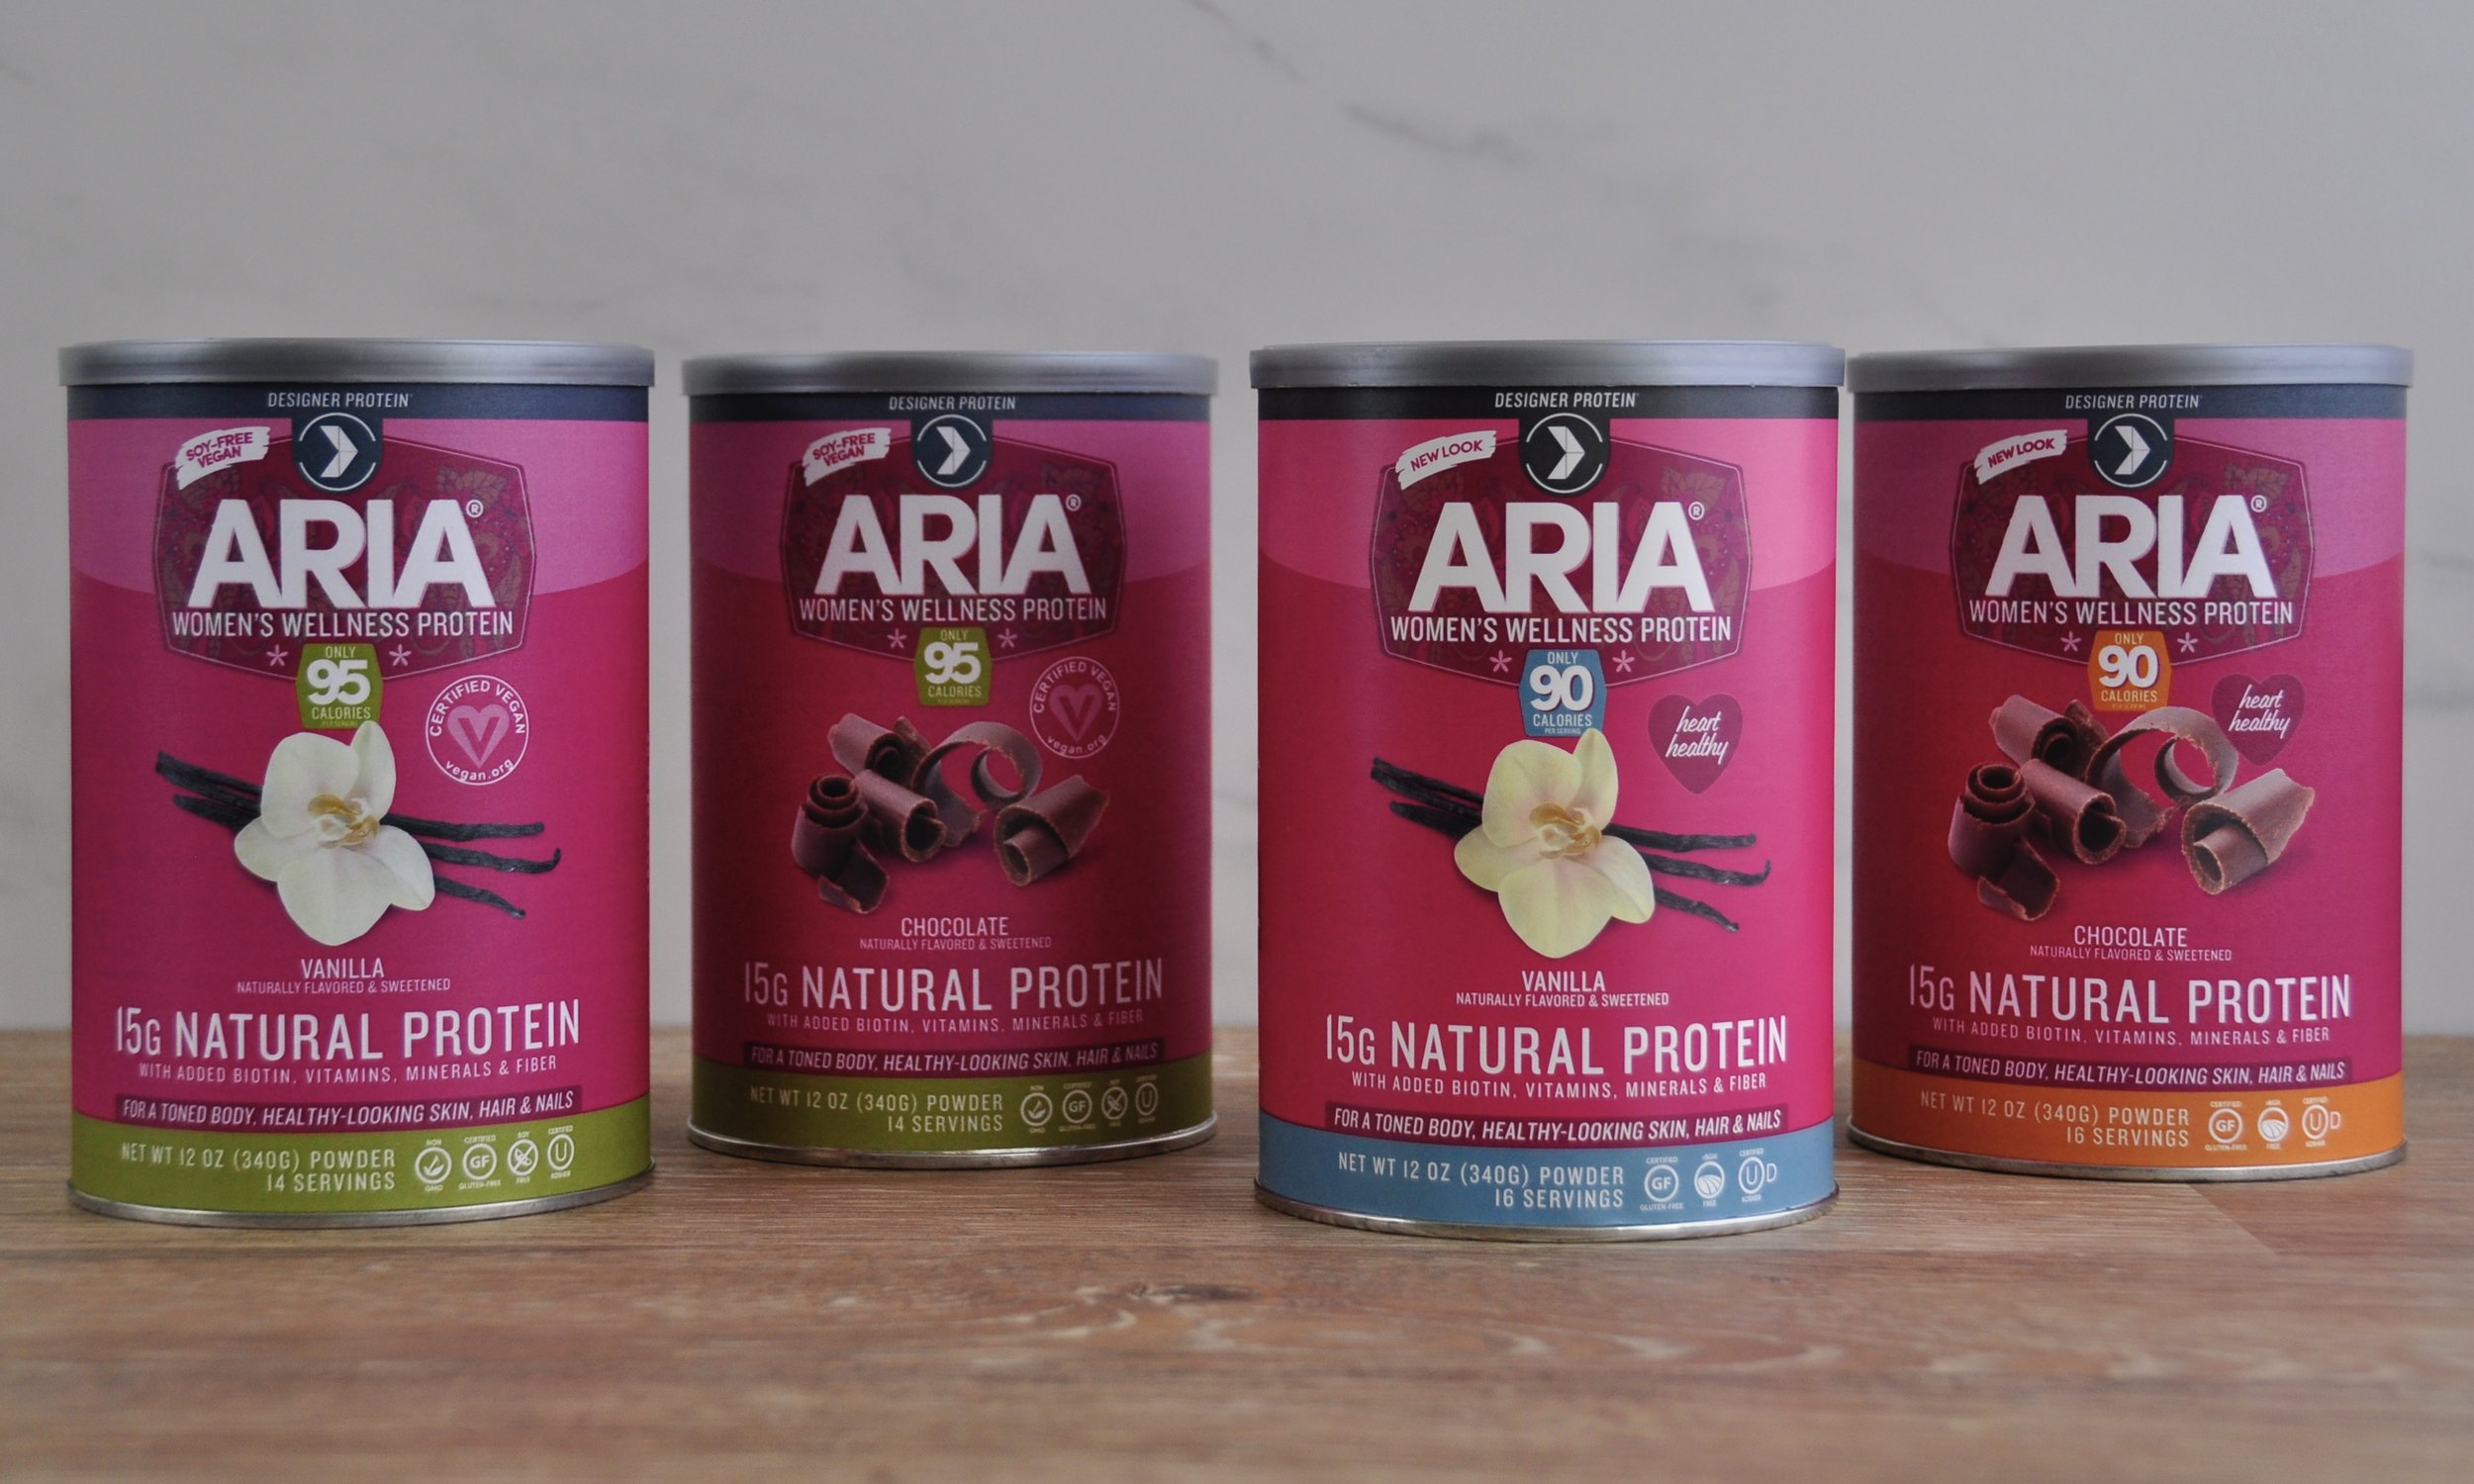 Aria protein family - in charge of designing back and nutritional panel layouts.